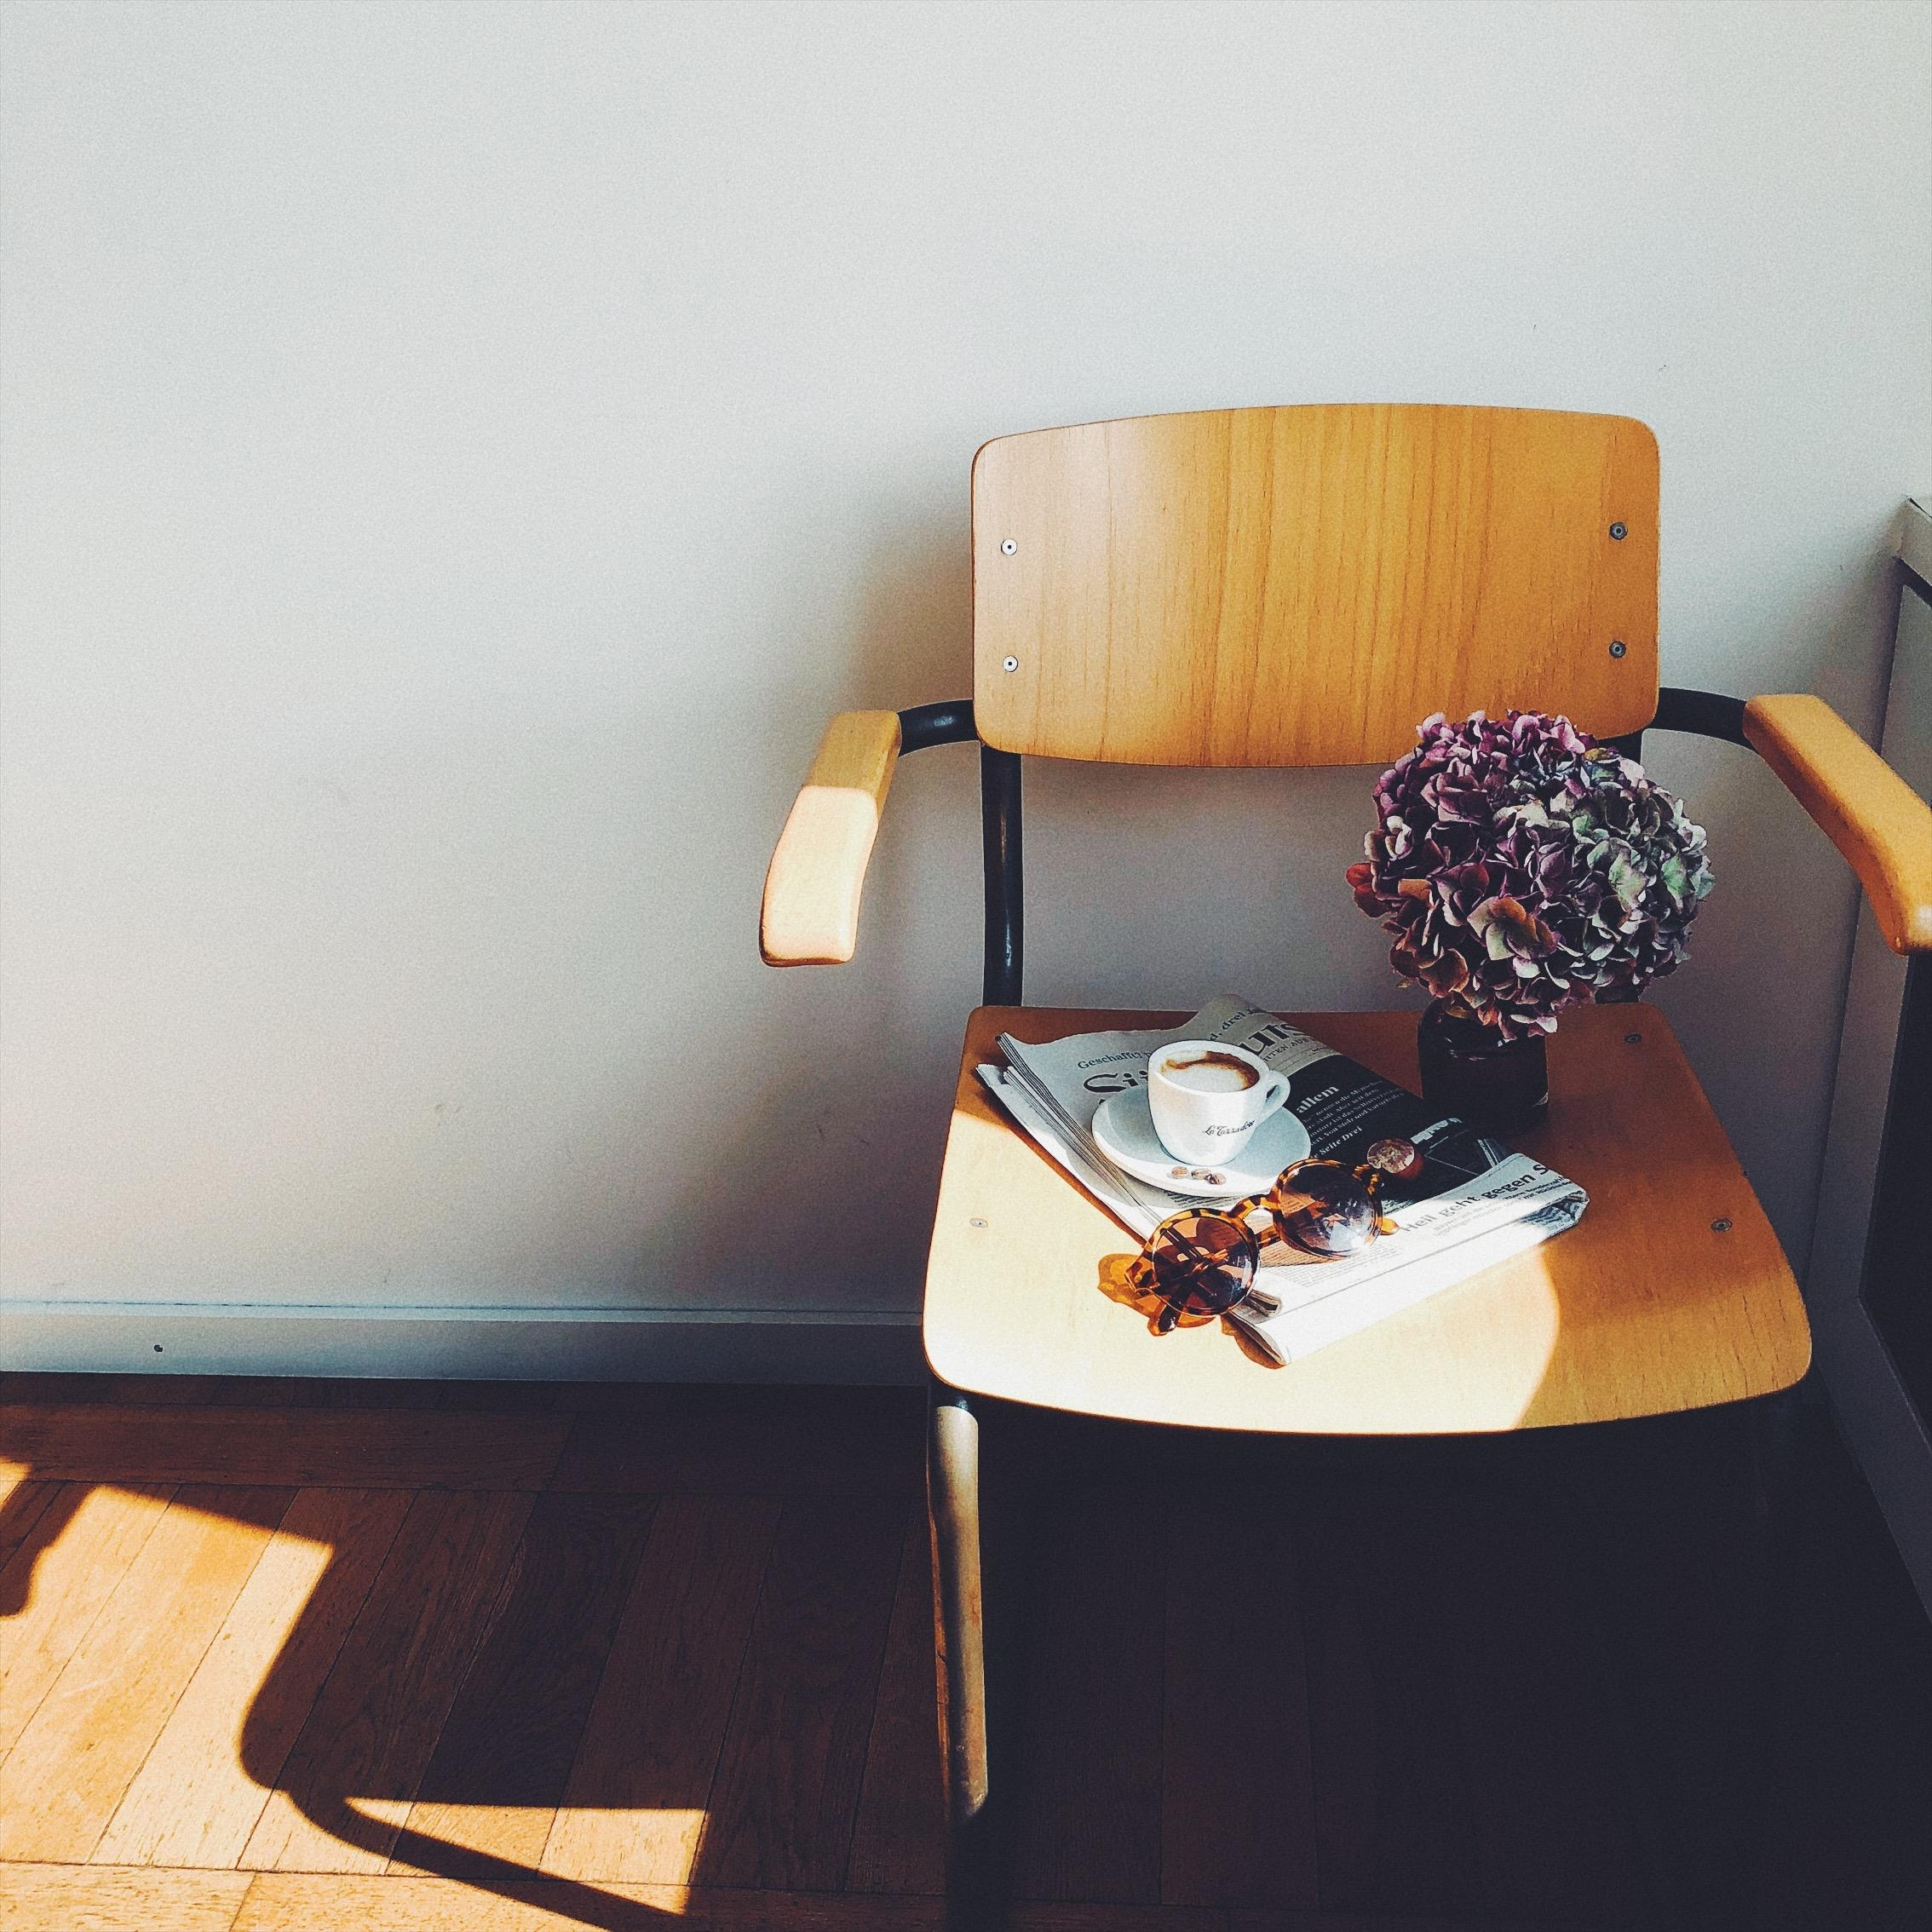 chasing light #chair #flowers #stuhl #living #licht #stilleben #vintage #altbau #coffeelover #couchstyle